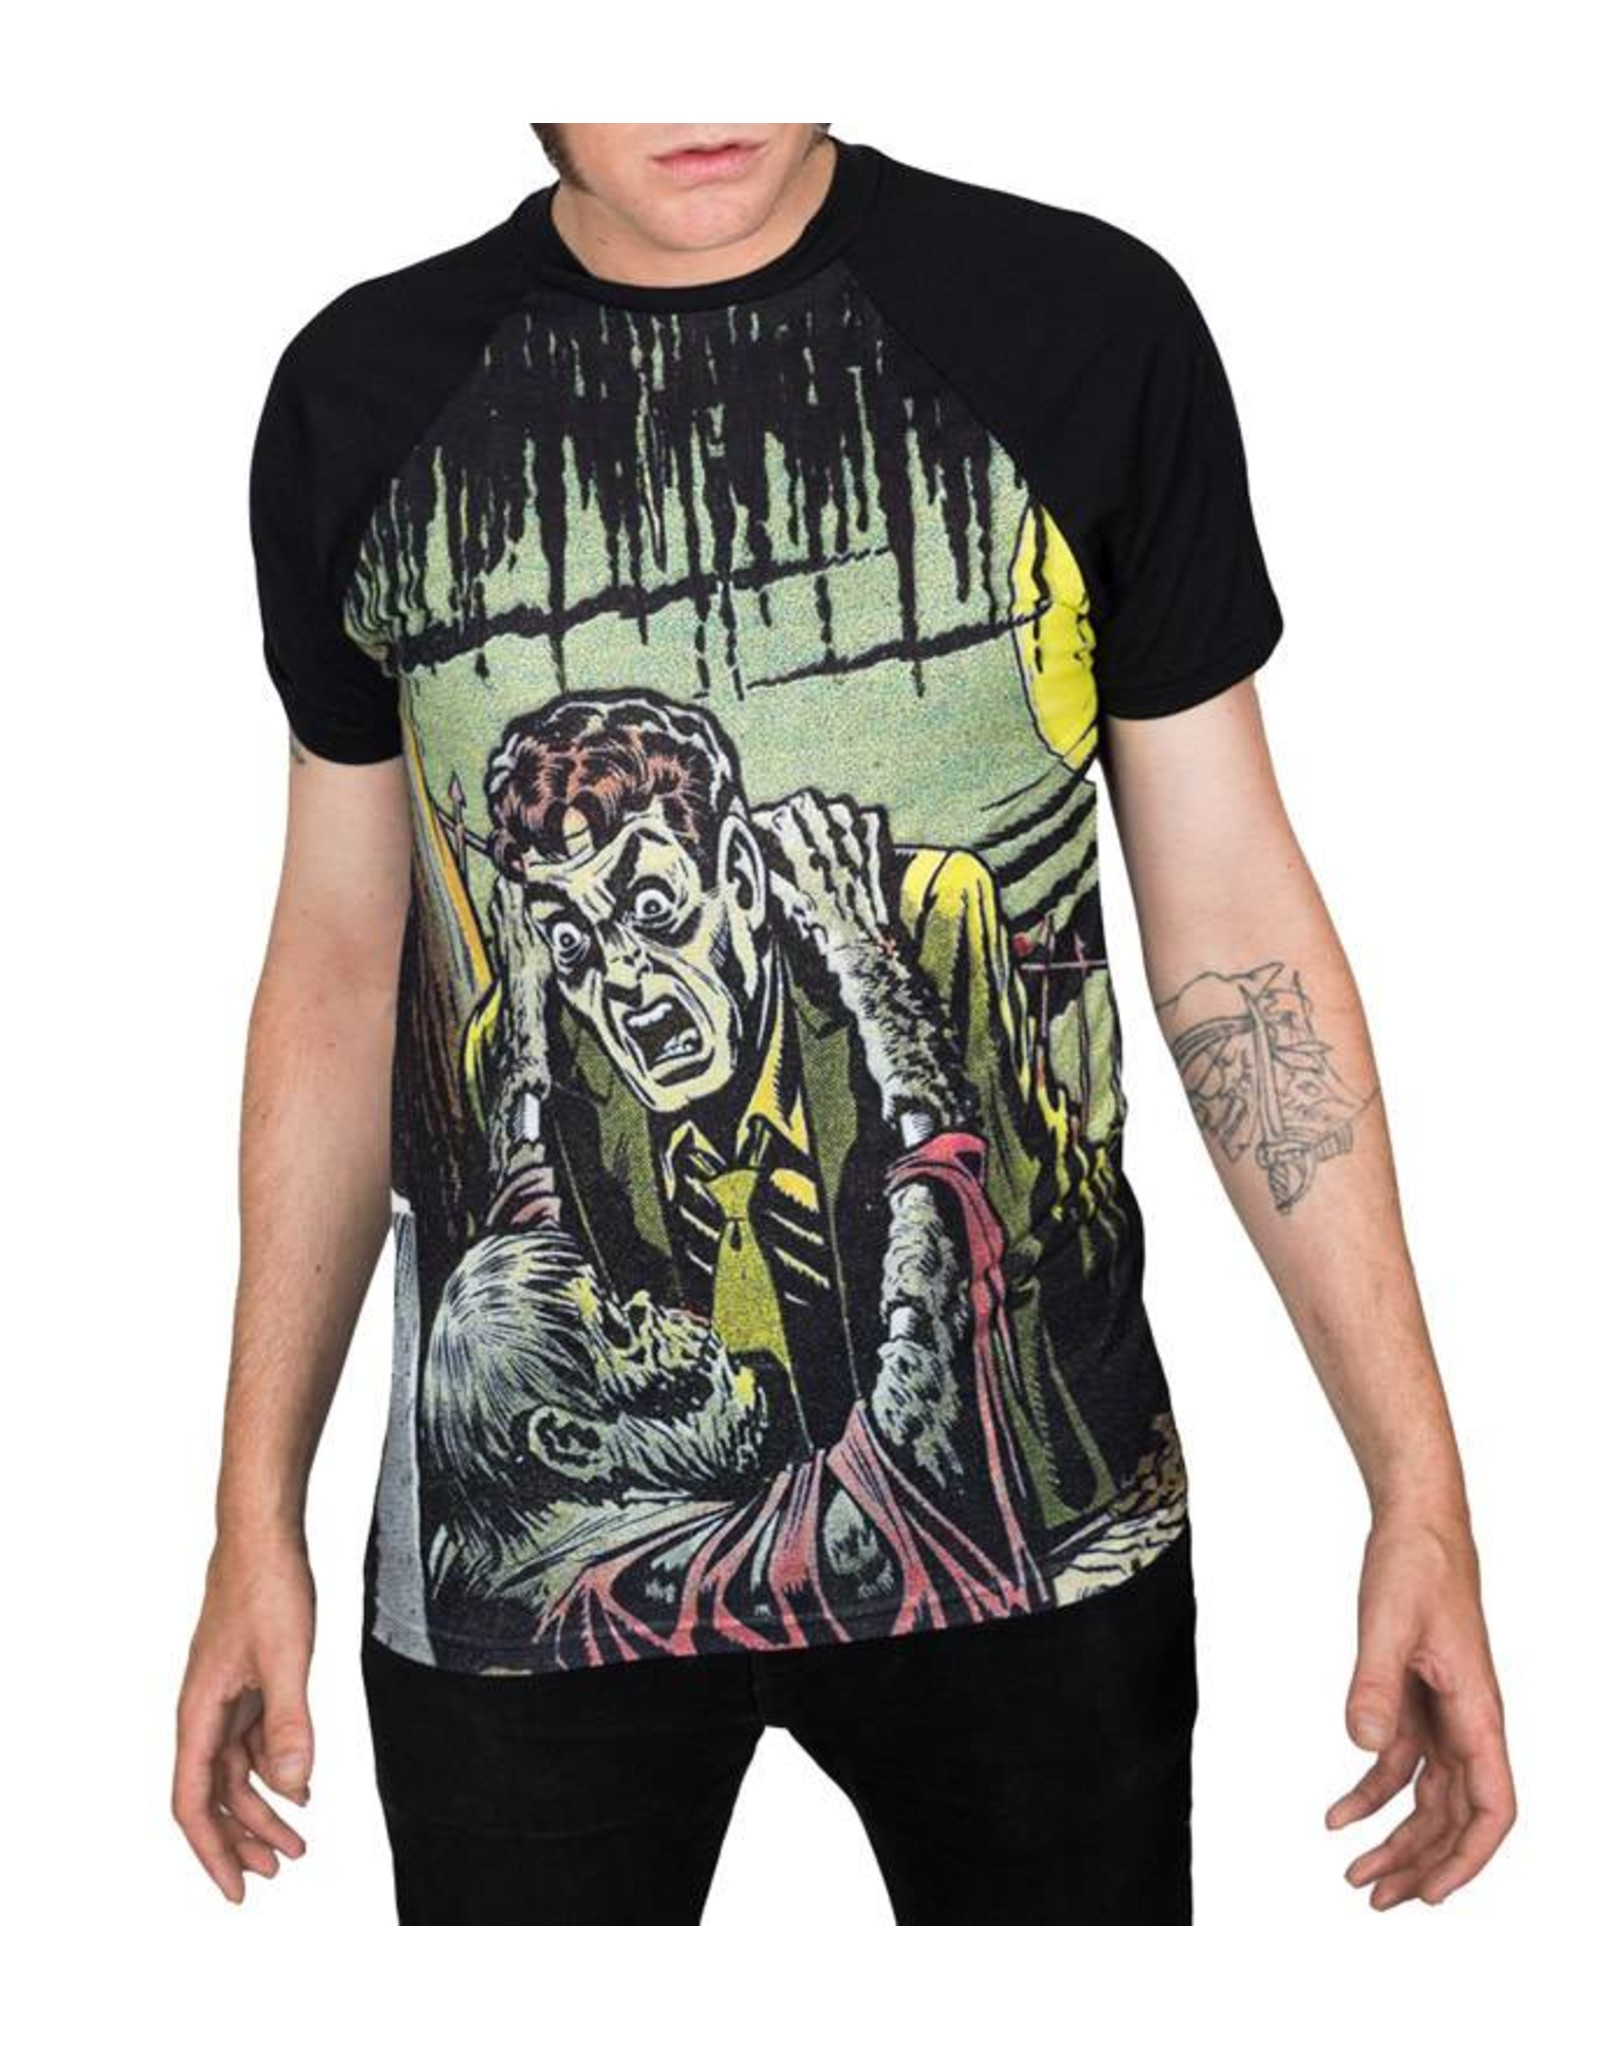 KREEPSVILLE 666 - Tales From The Crypt Gravebuster T-Shirt